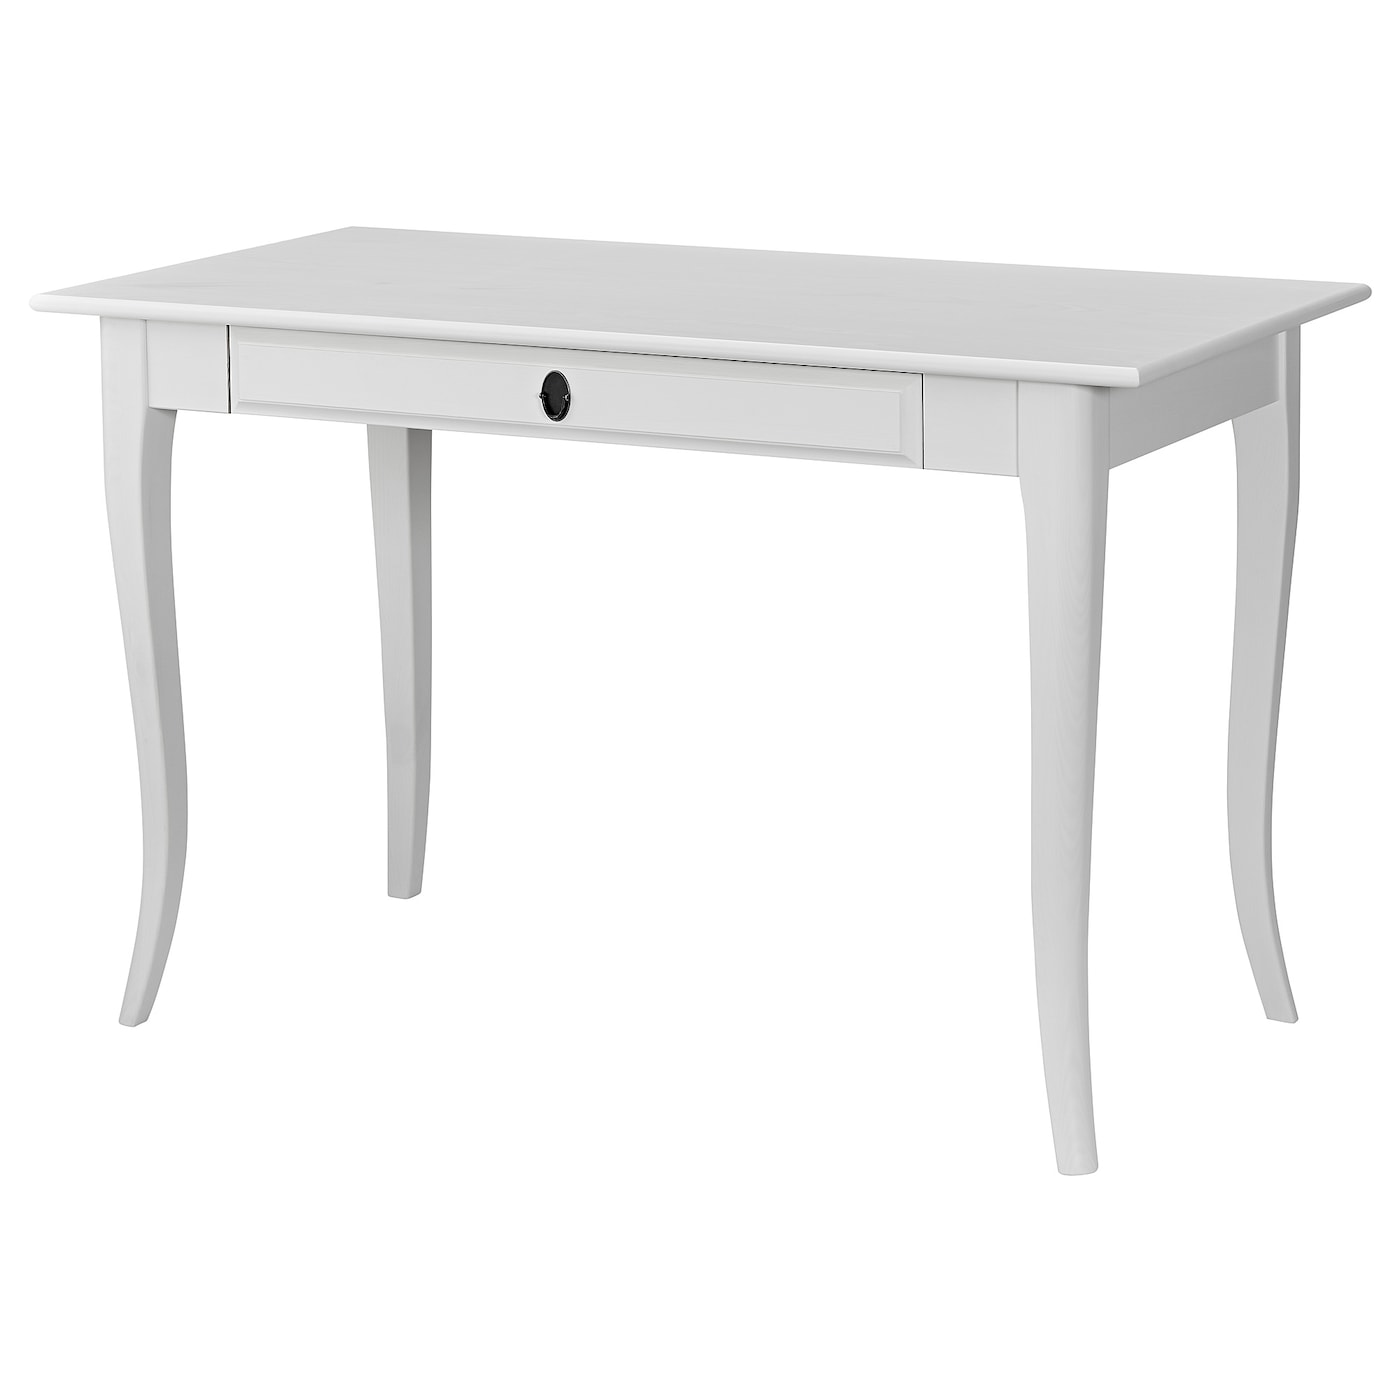 IKEA LEKSVIK desk Solid wood is a durable natural material.